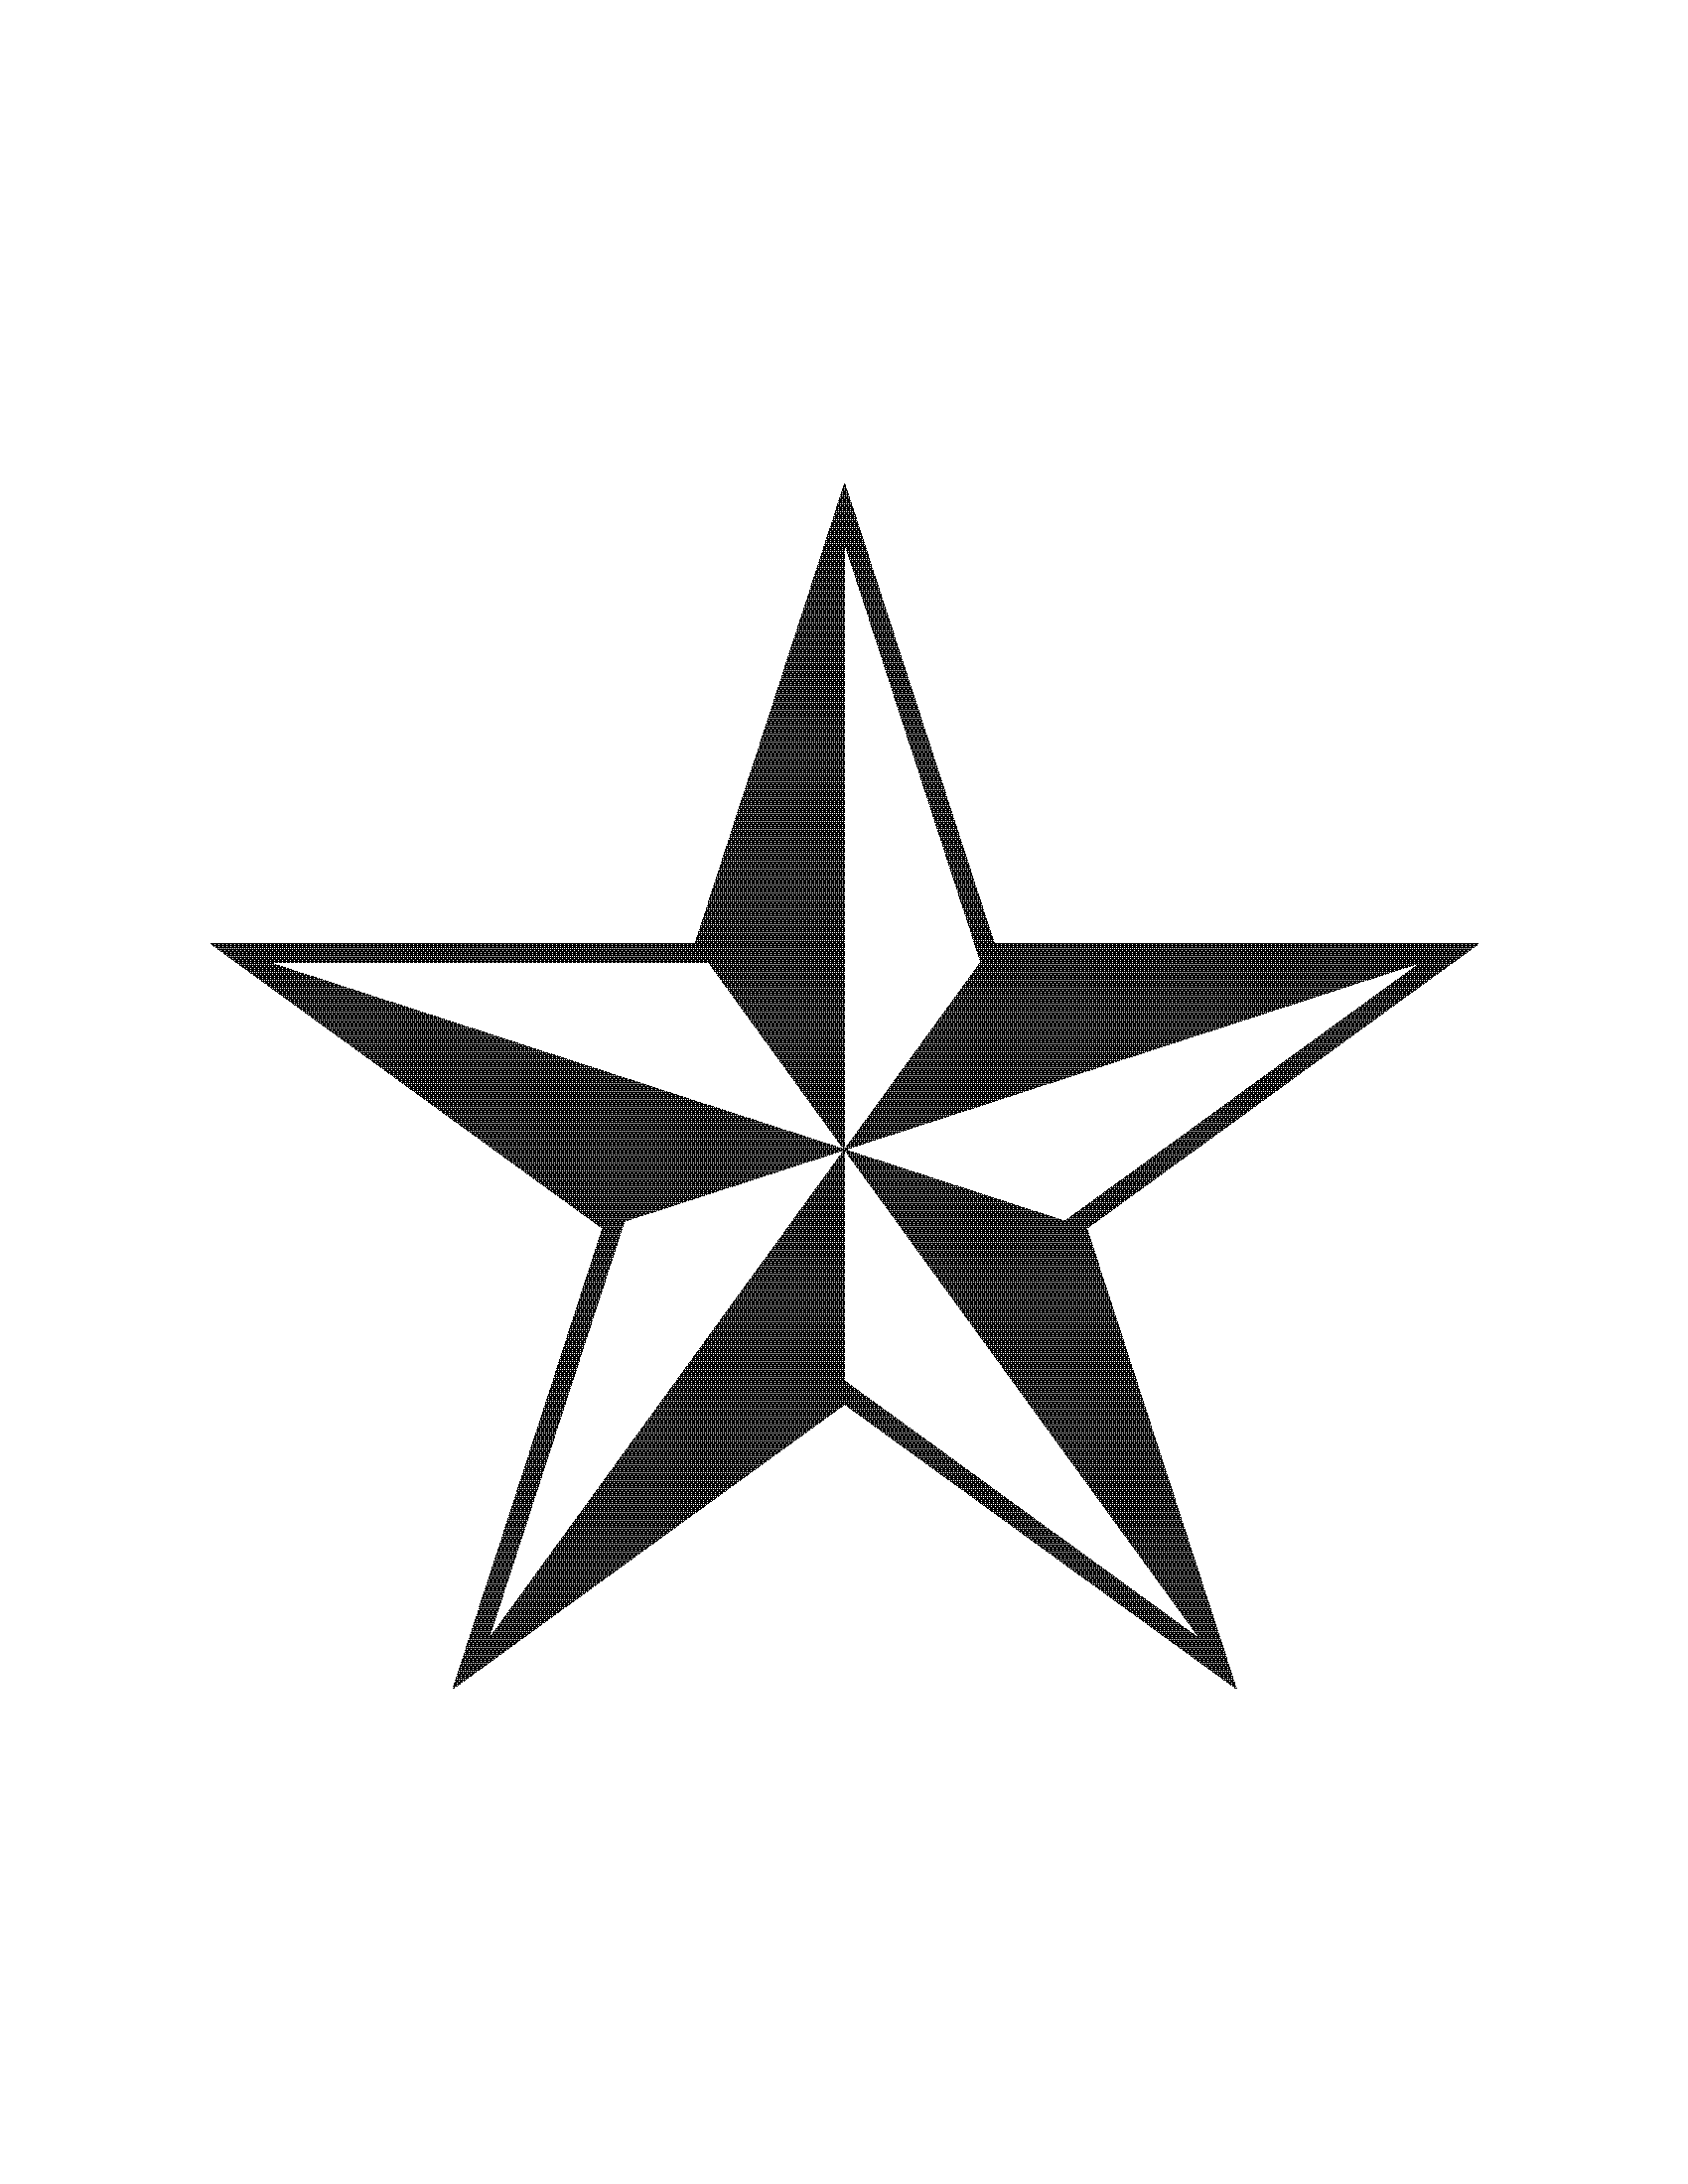 Free White Star Png Transparent Background, Download Free.